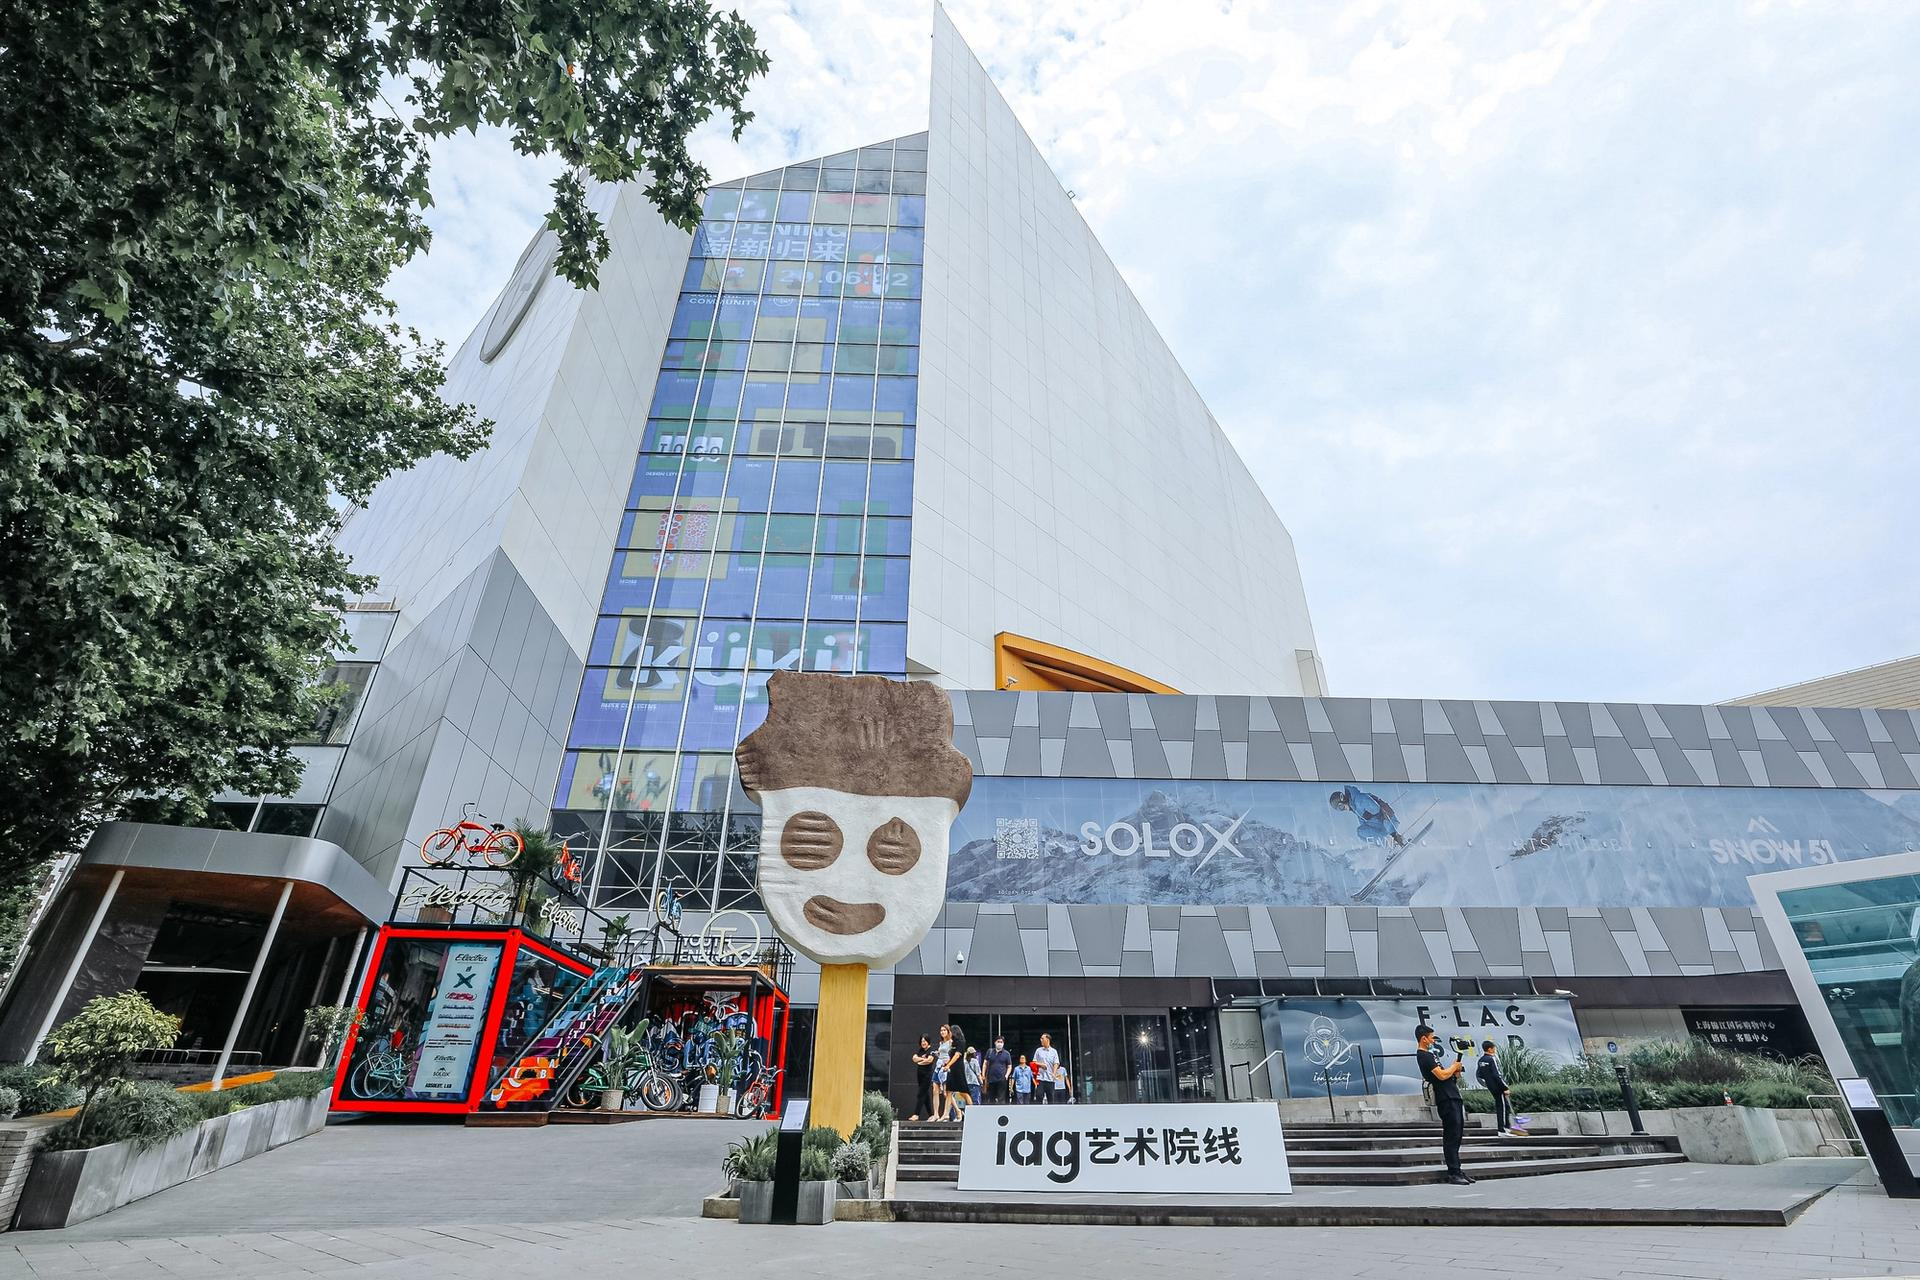 Shanghai's Theatre X mall, the site of the Immersive Art Gallery (IAG) Courtesy of Immersive Art Gallery (IAG) and Art021